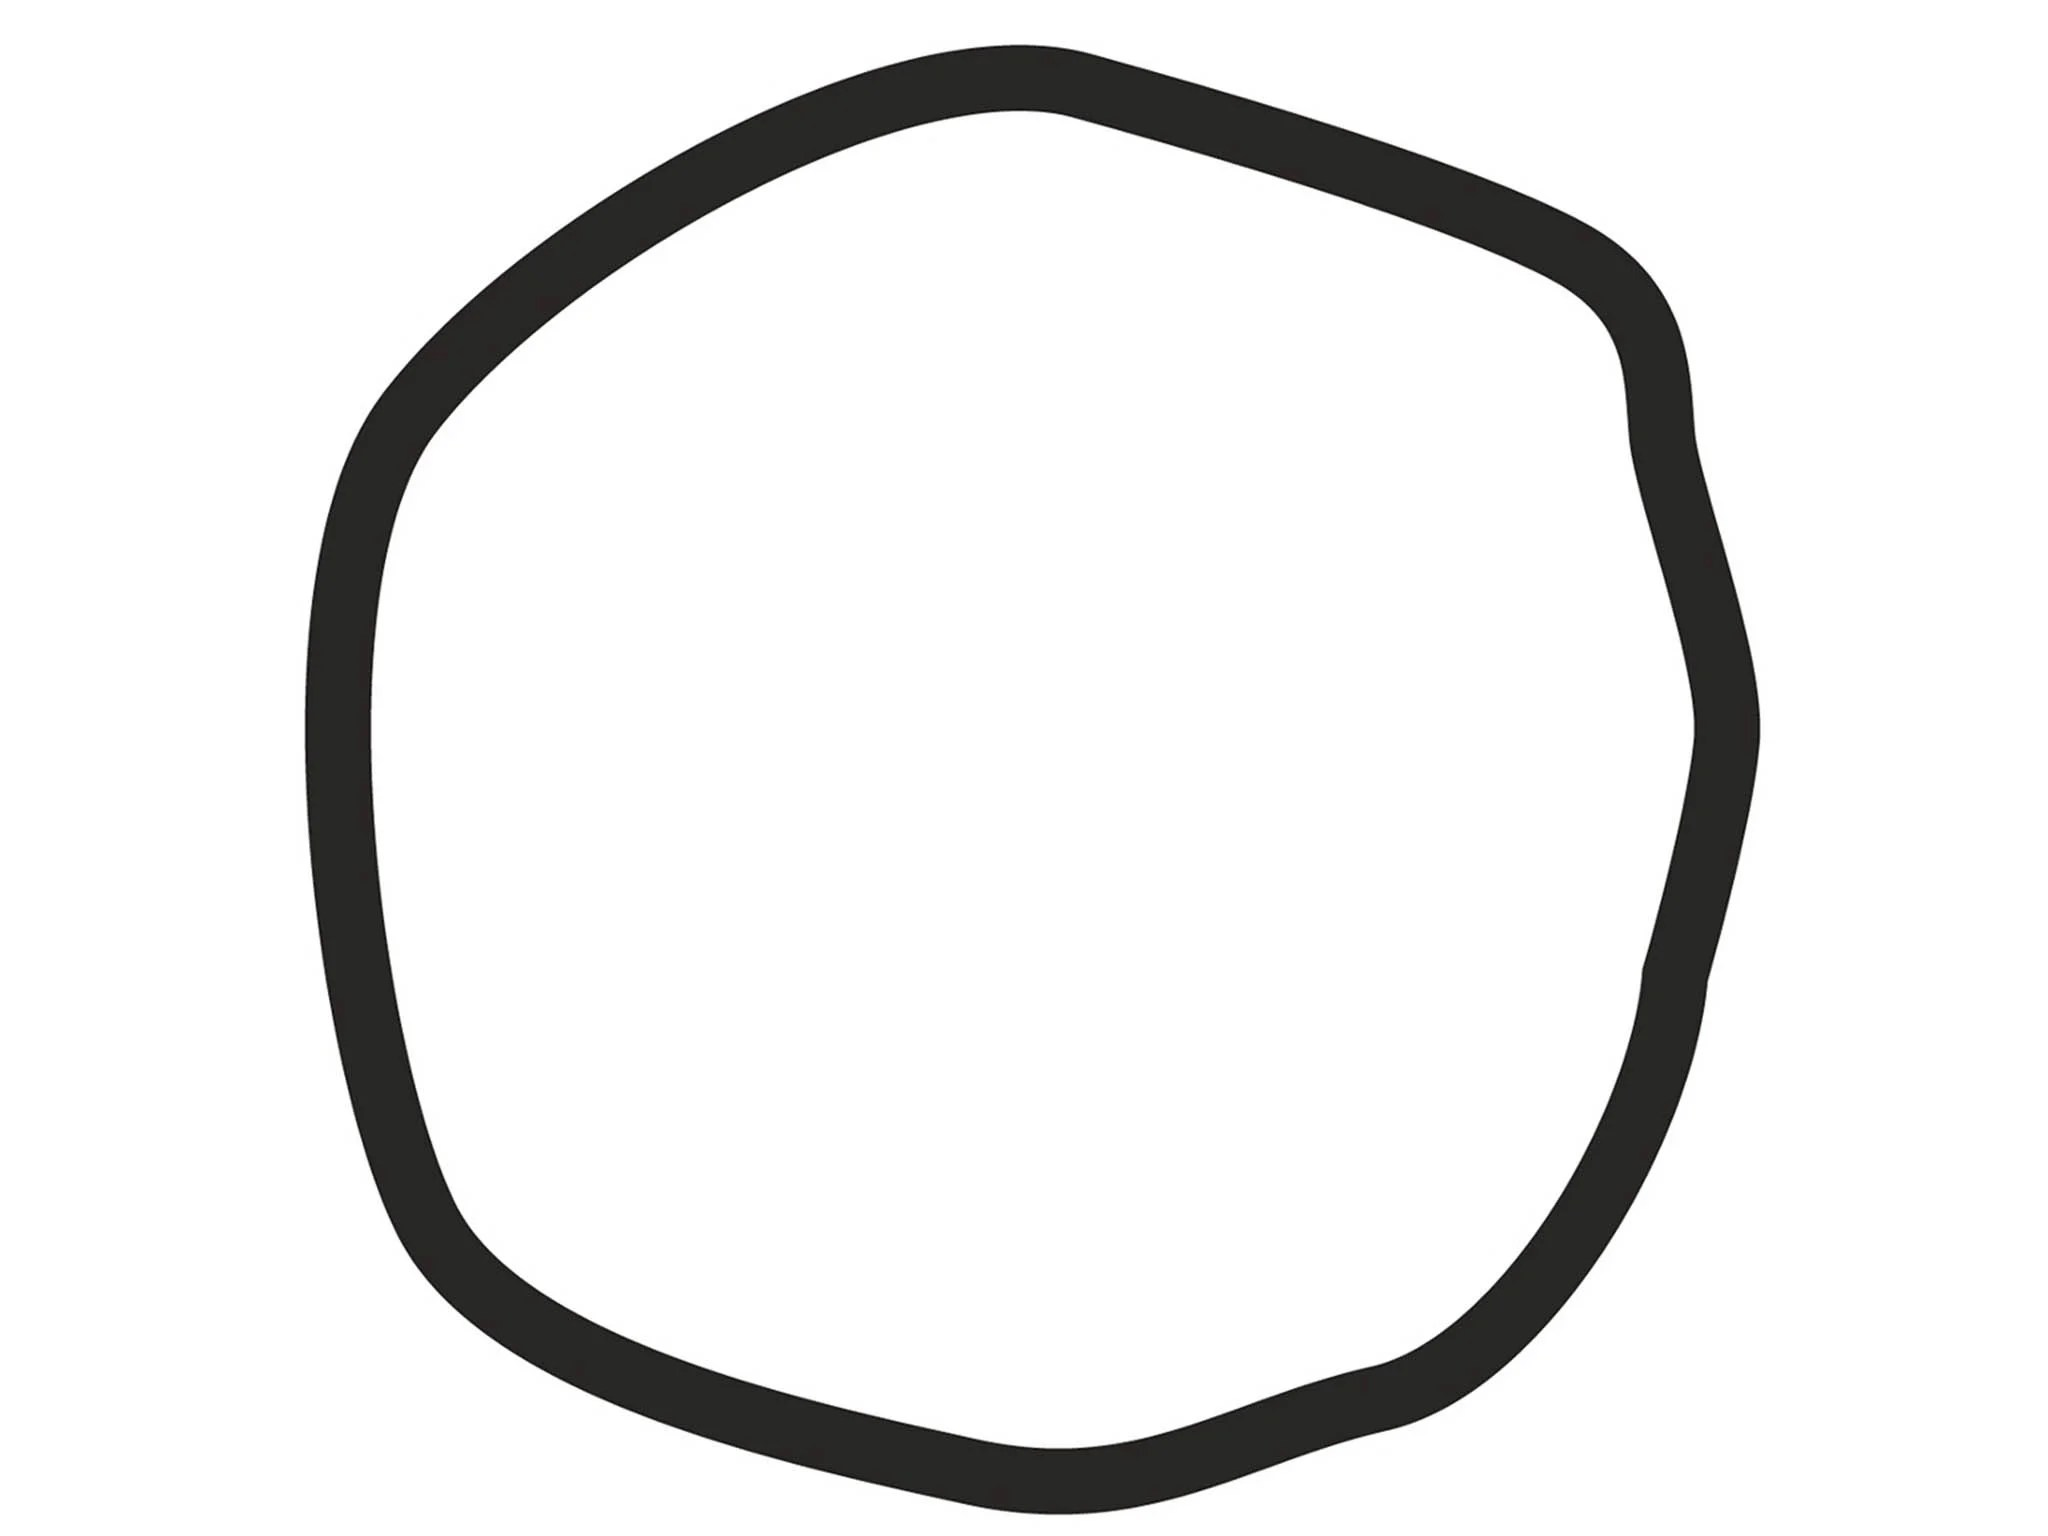 Is this a circle? Your answer could reveal your political